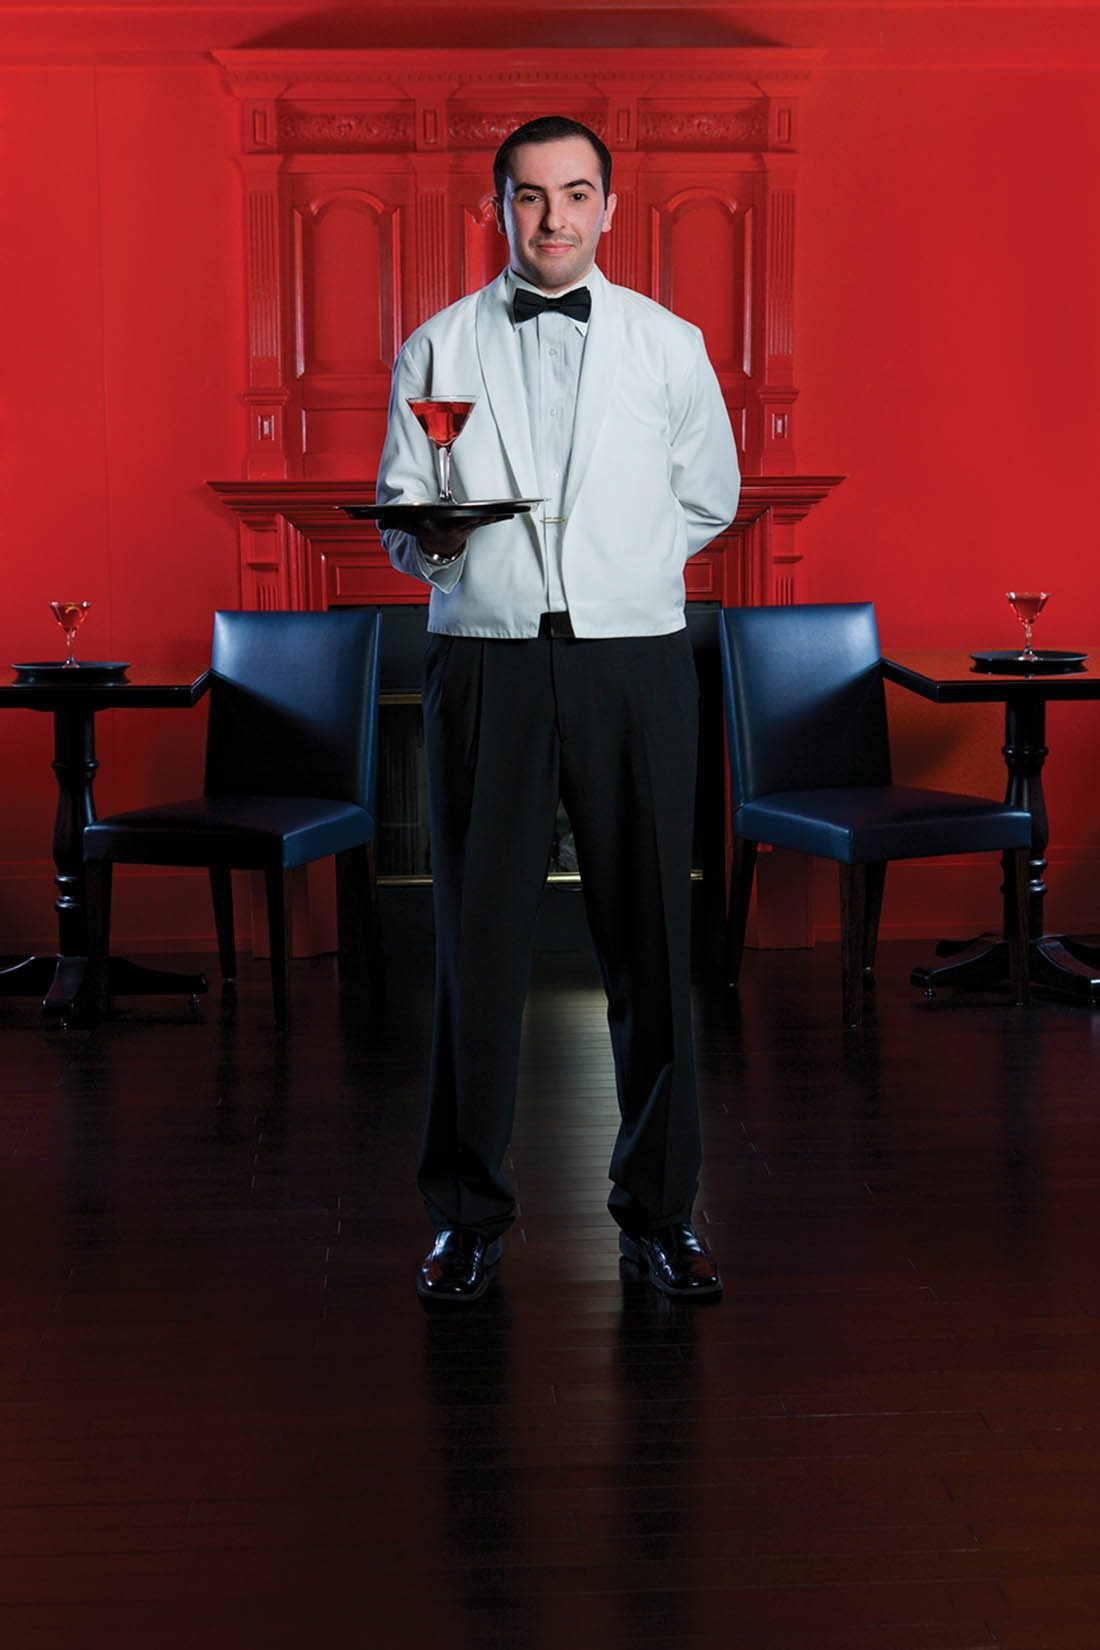 Bow-tied waiter holding a tray with a serving of alcohol in front of a red wall and two navy blue chairs on either side.